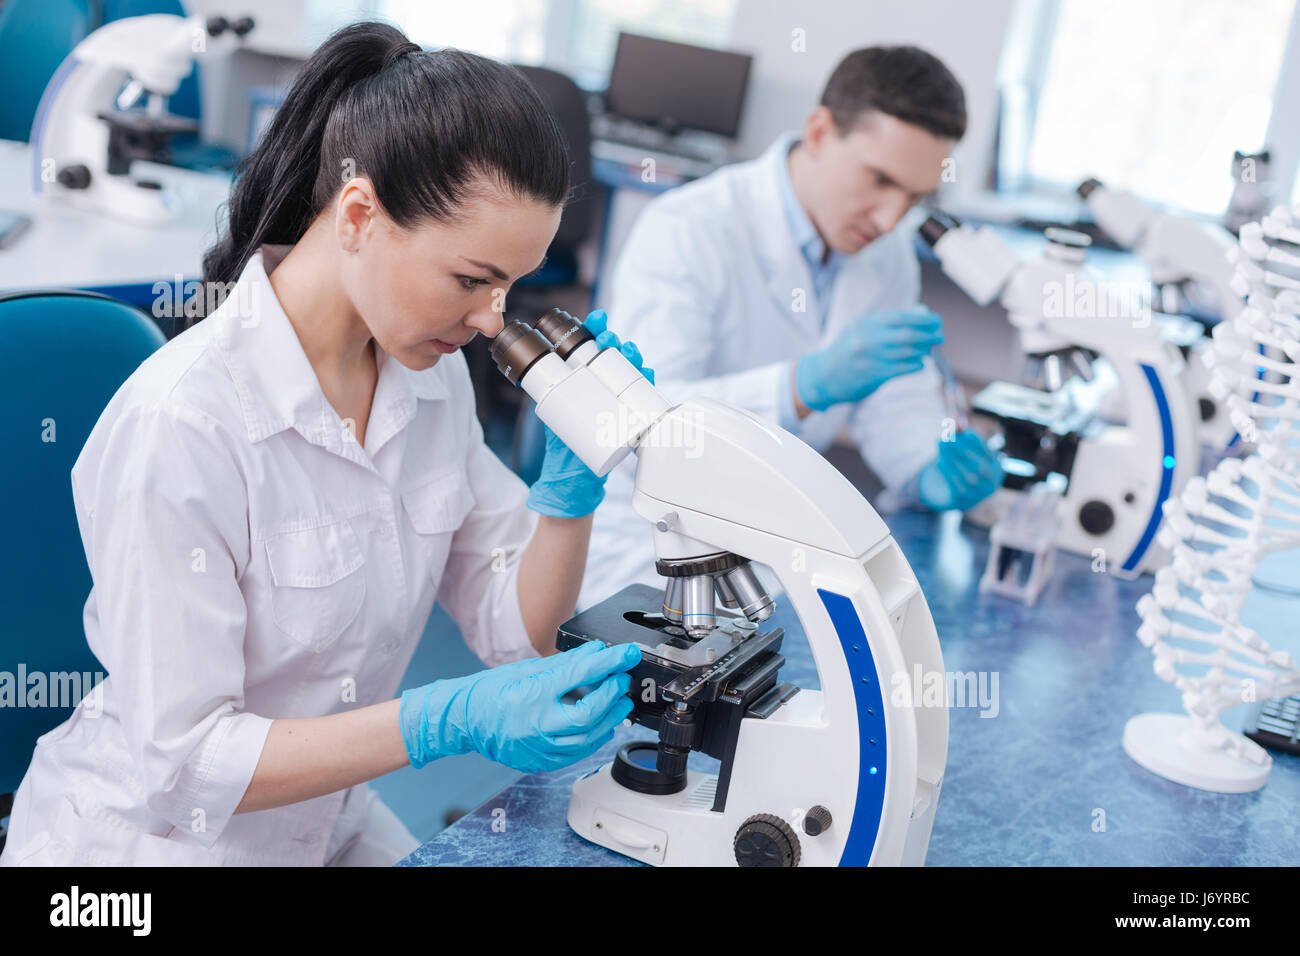 Very attentive scientist looking into microscope - Stock Image